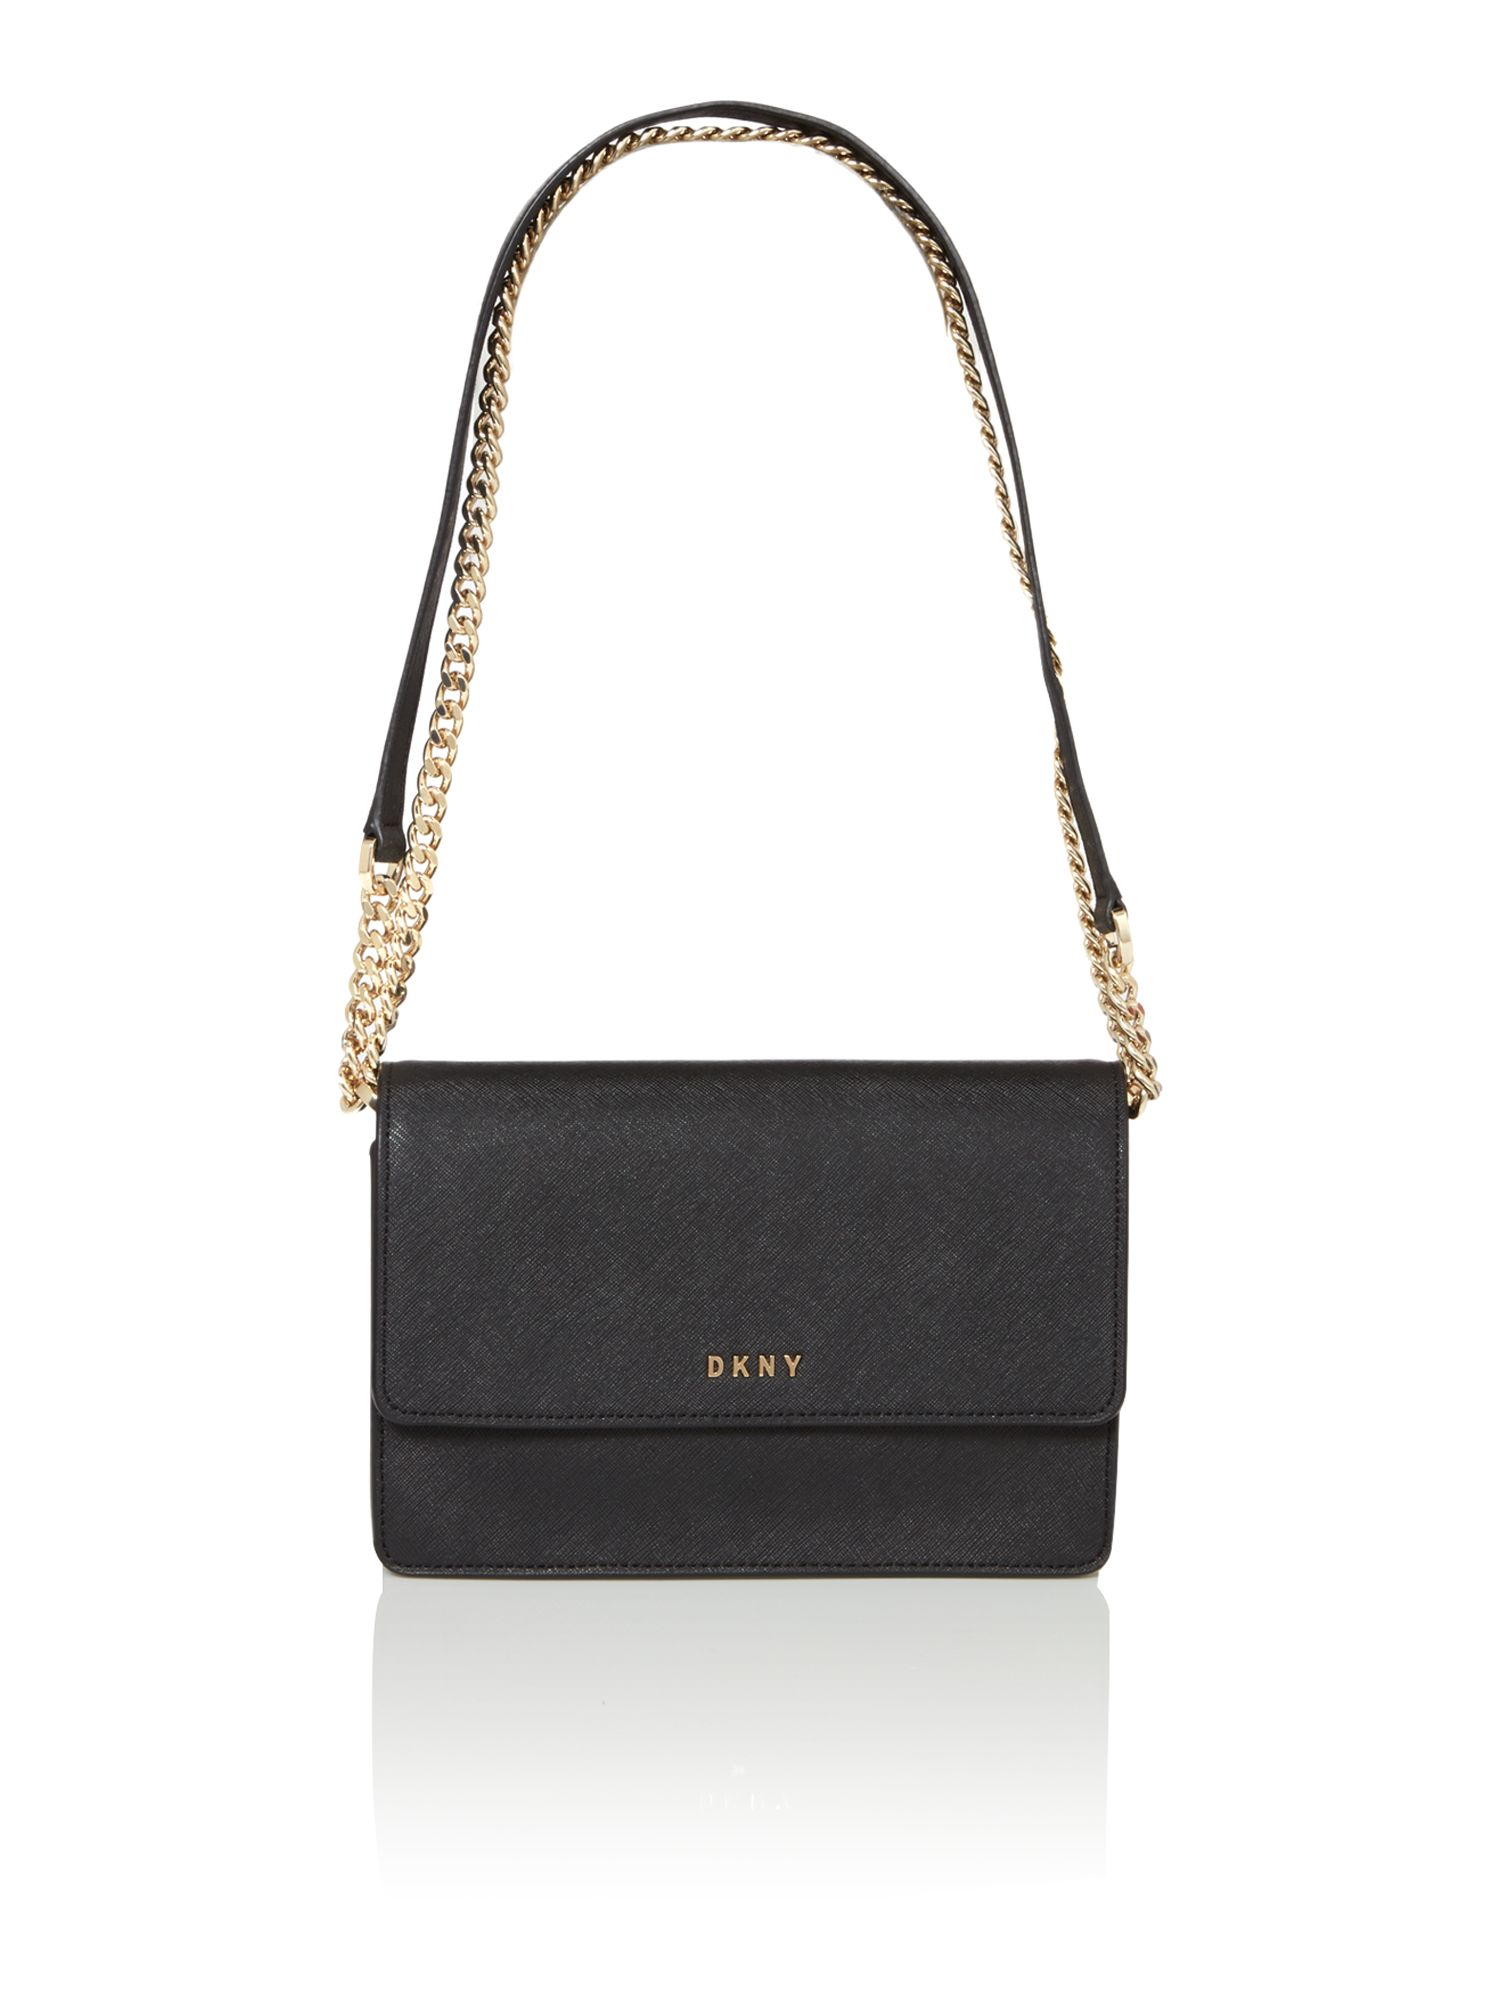 dkny bags dkny saffiano black small flapover cross body bag ... QLBHPRK